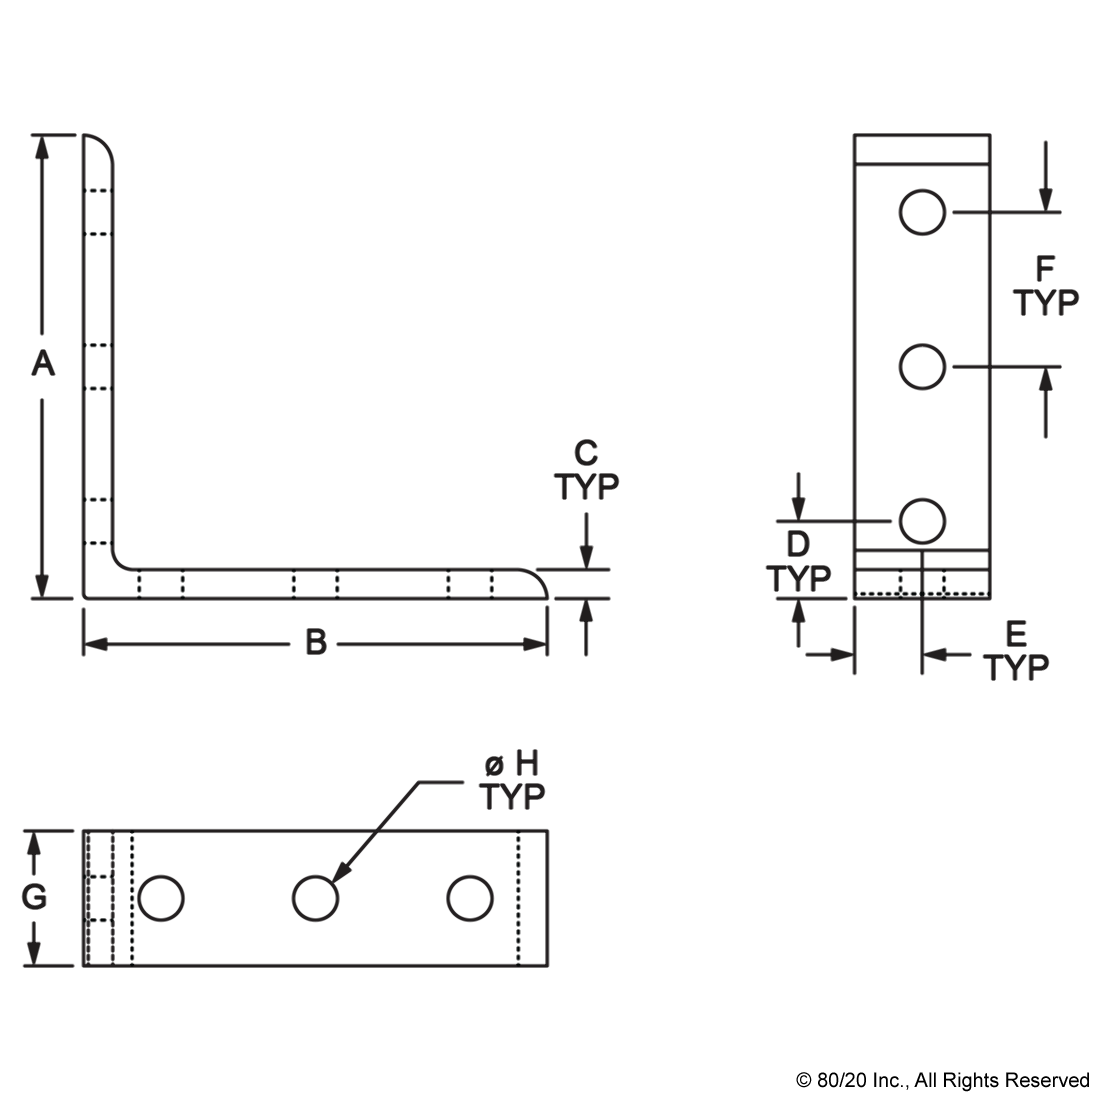 Typ drawing microcontroller. Dimensional